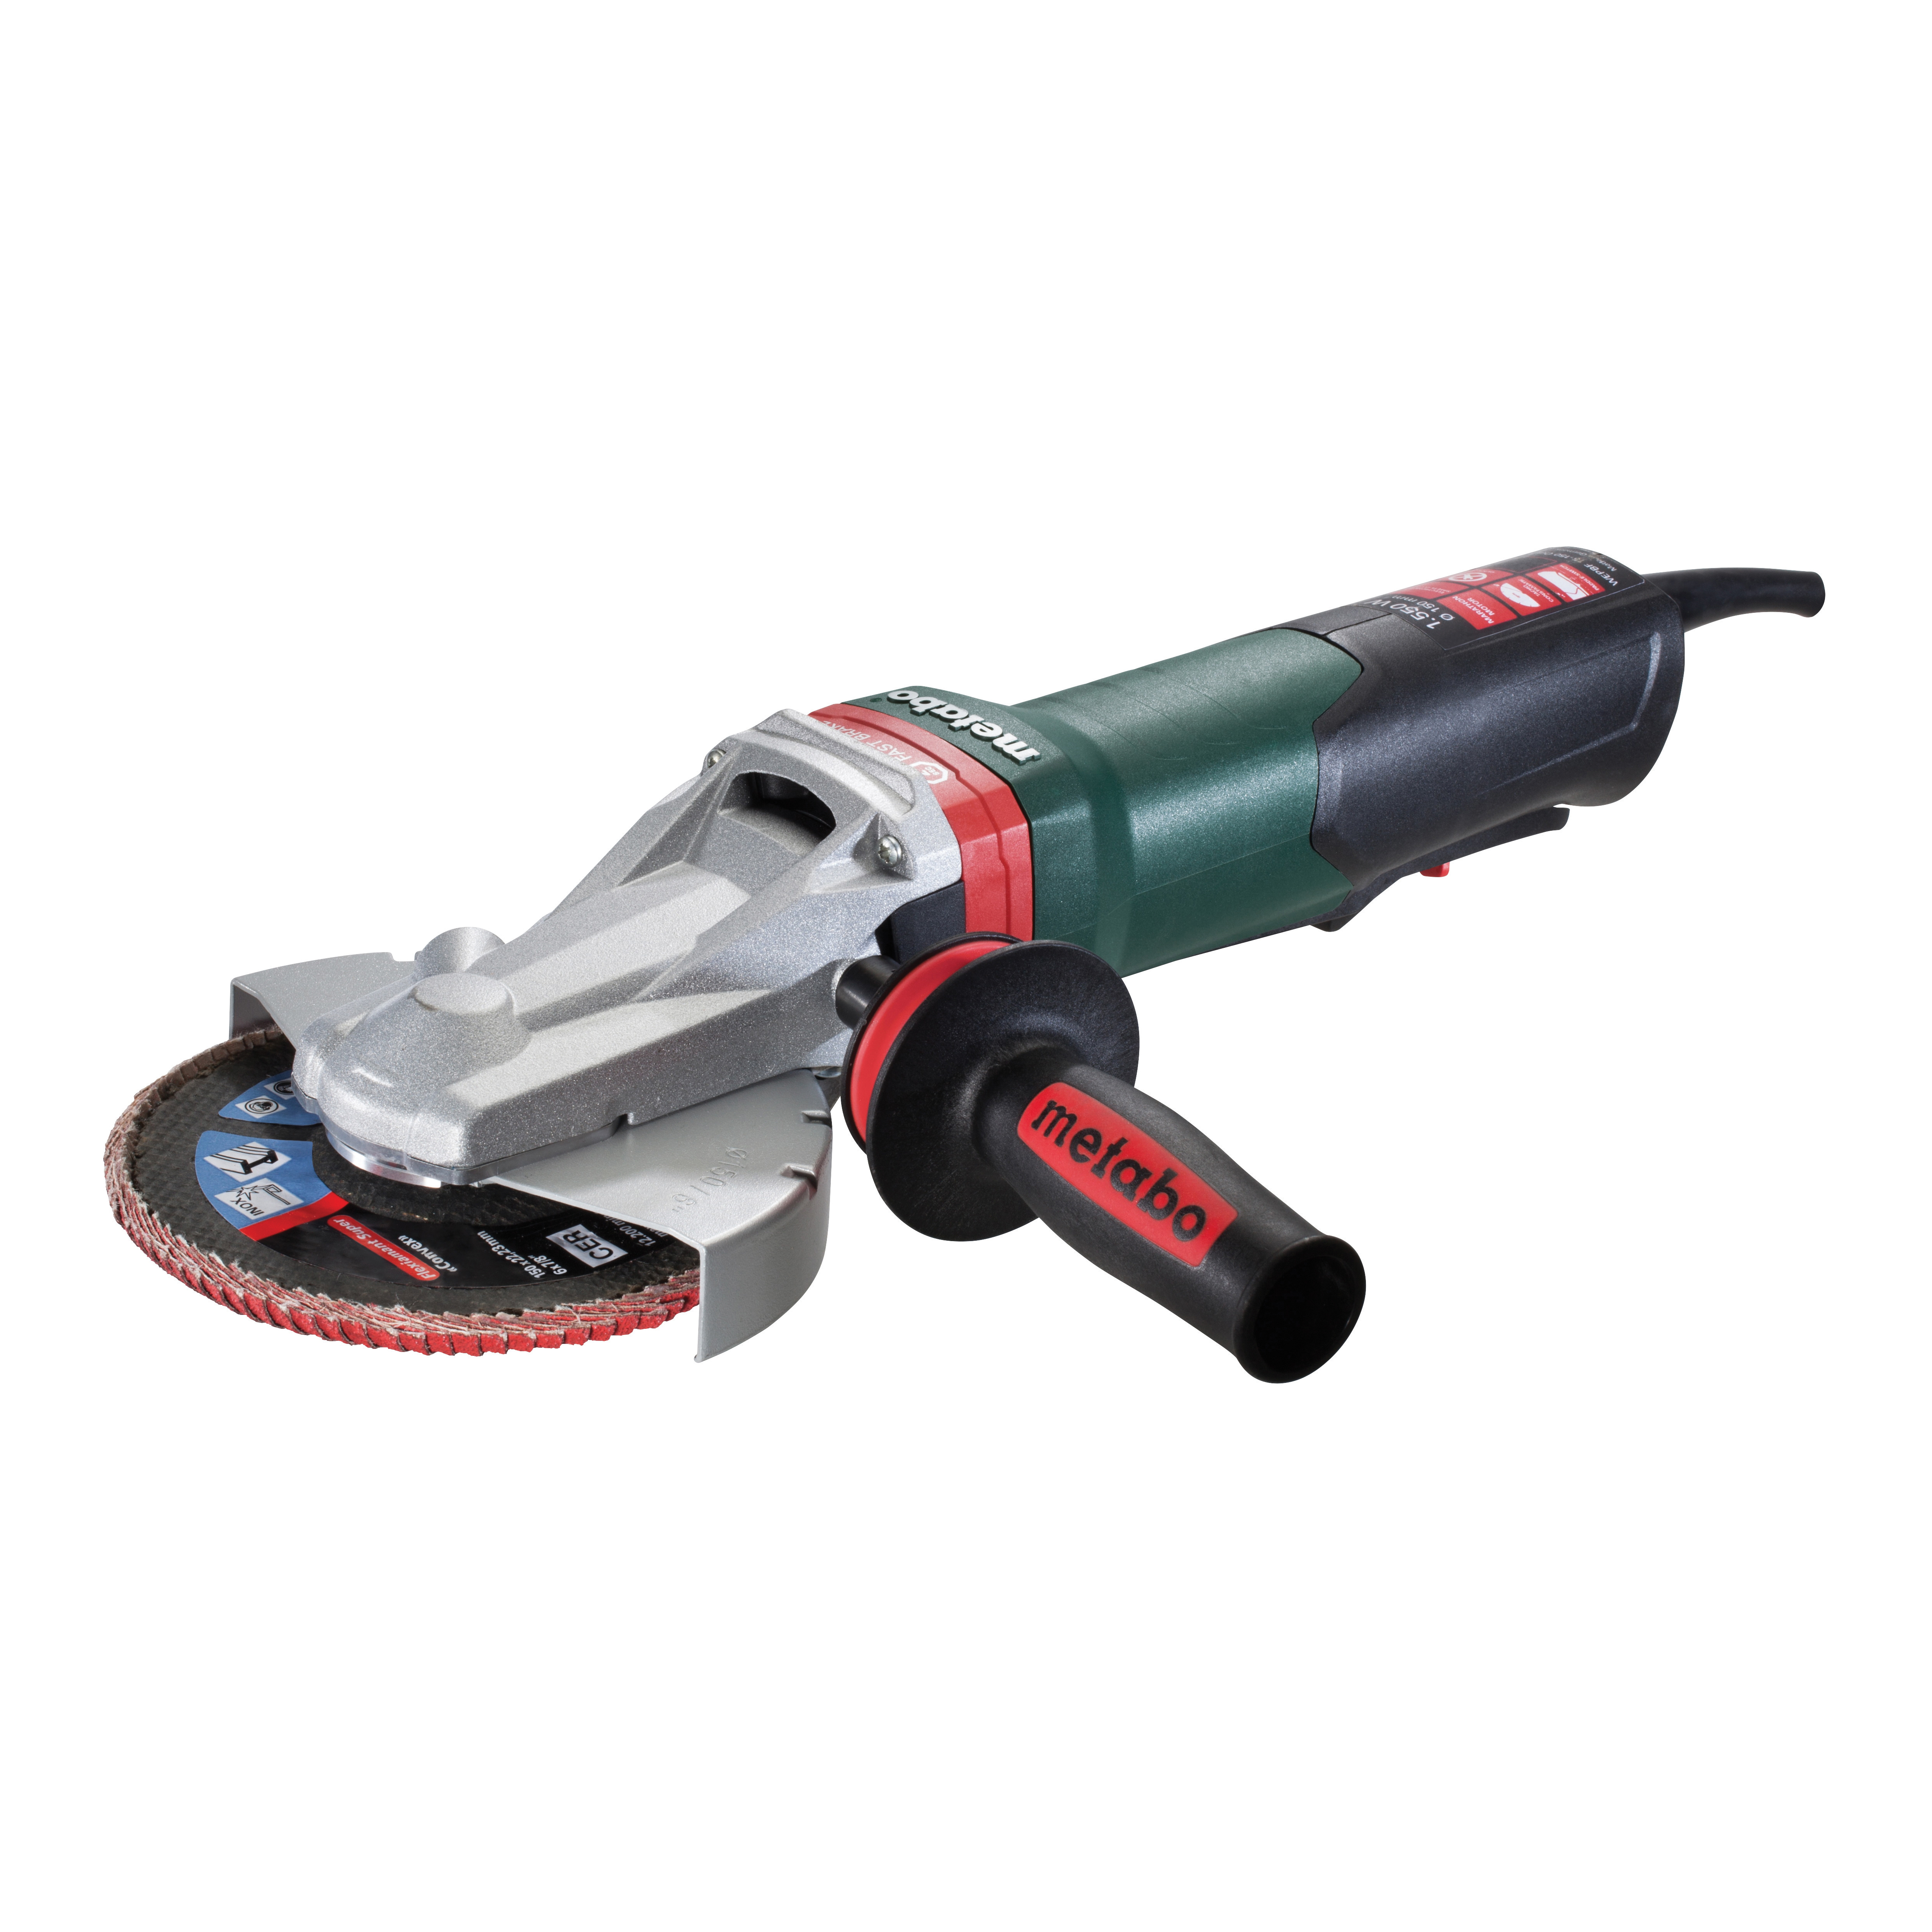 "Metabo WEPBF 15-150 Quick 6"" Flat Head Angle Grinder"